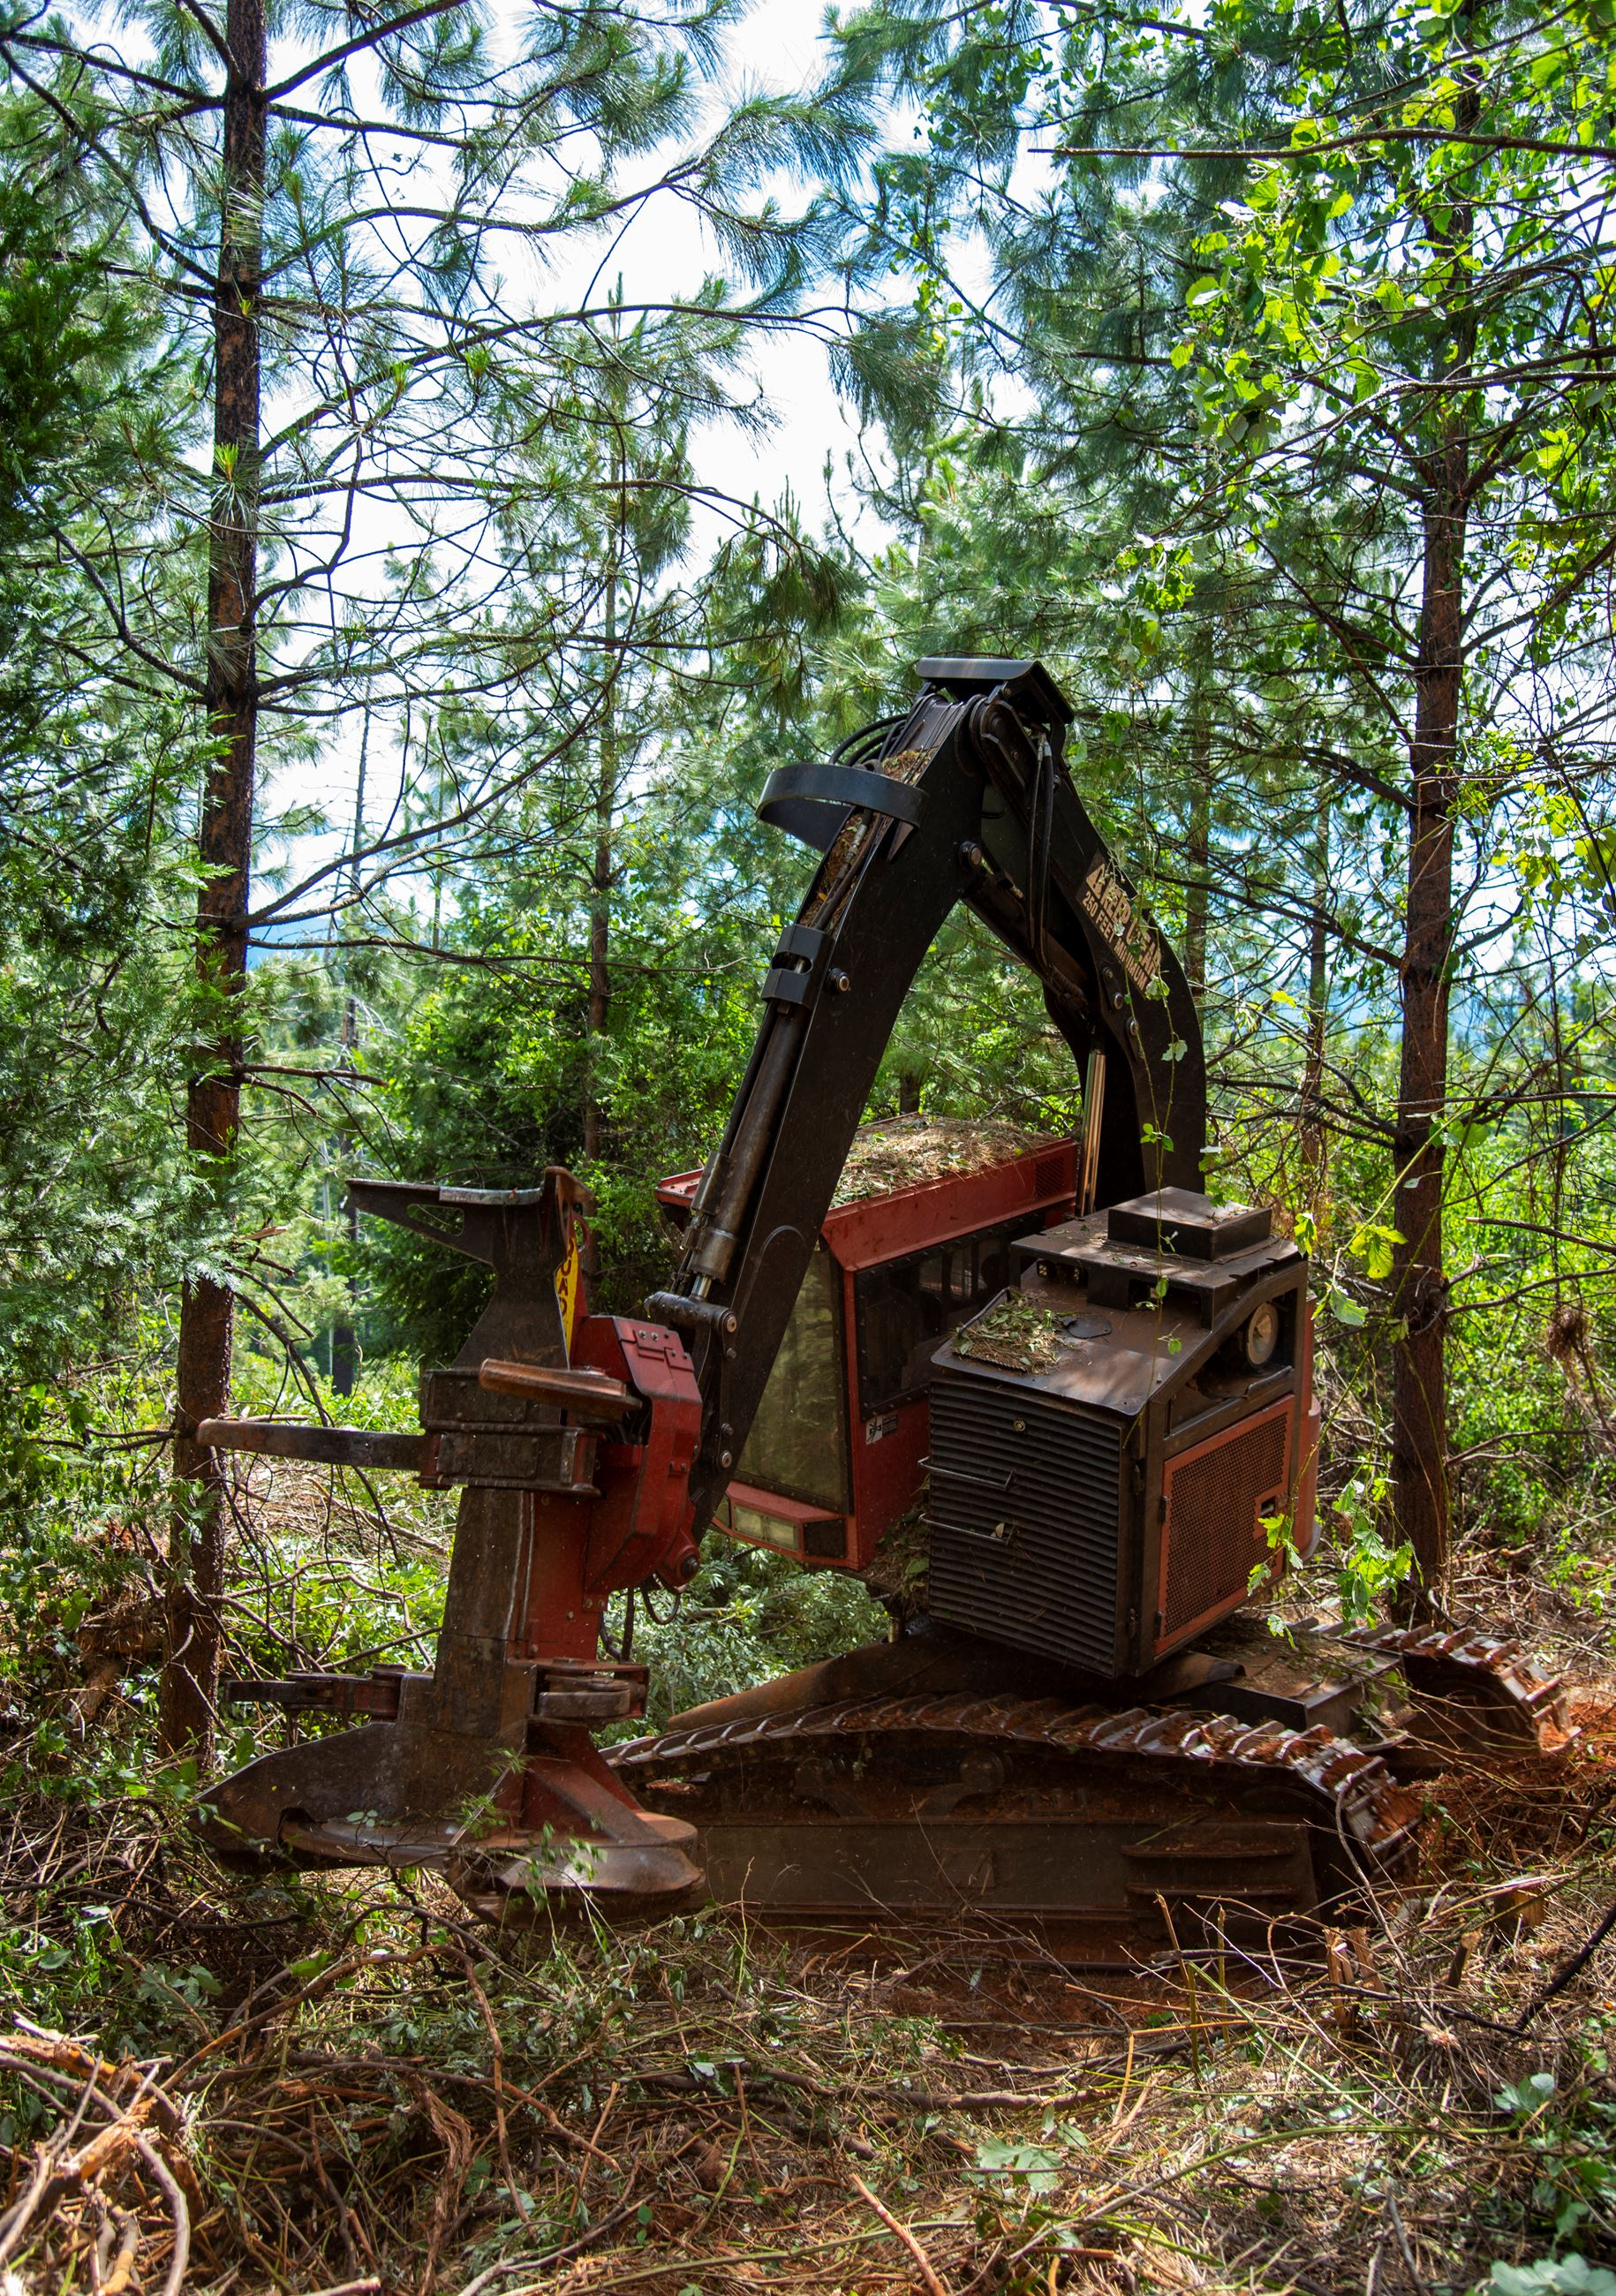 A photo of a masticator cutting trees in the forest.